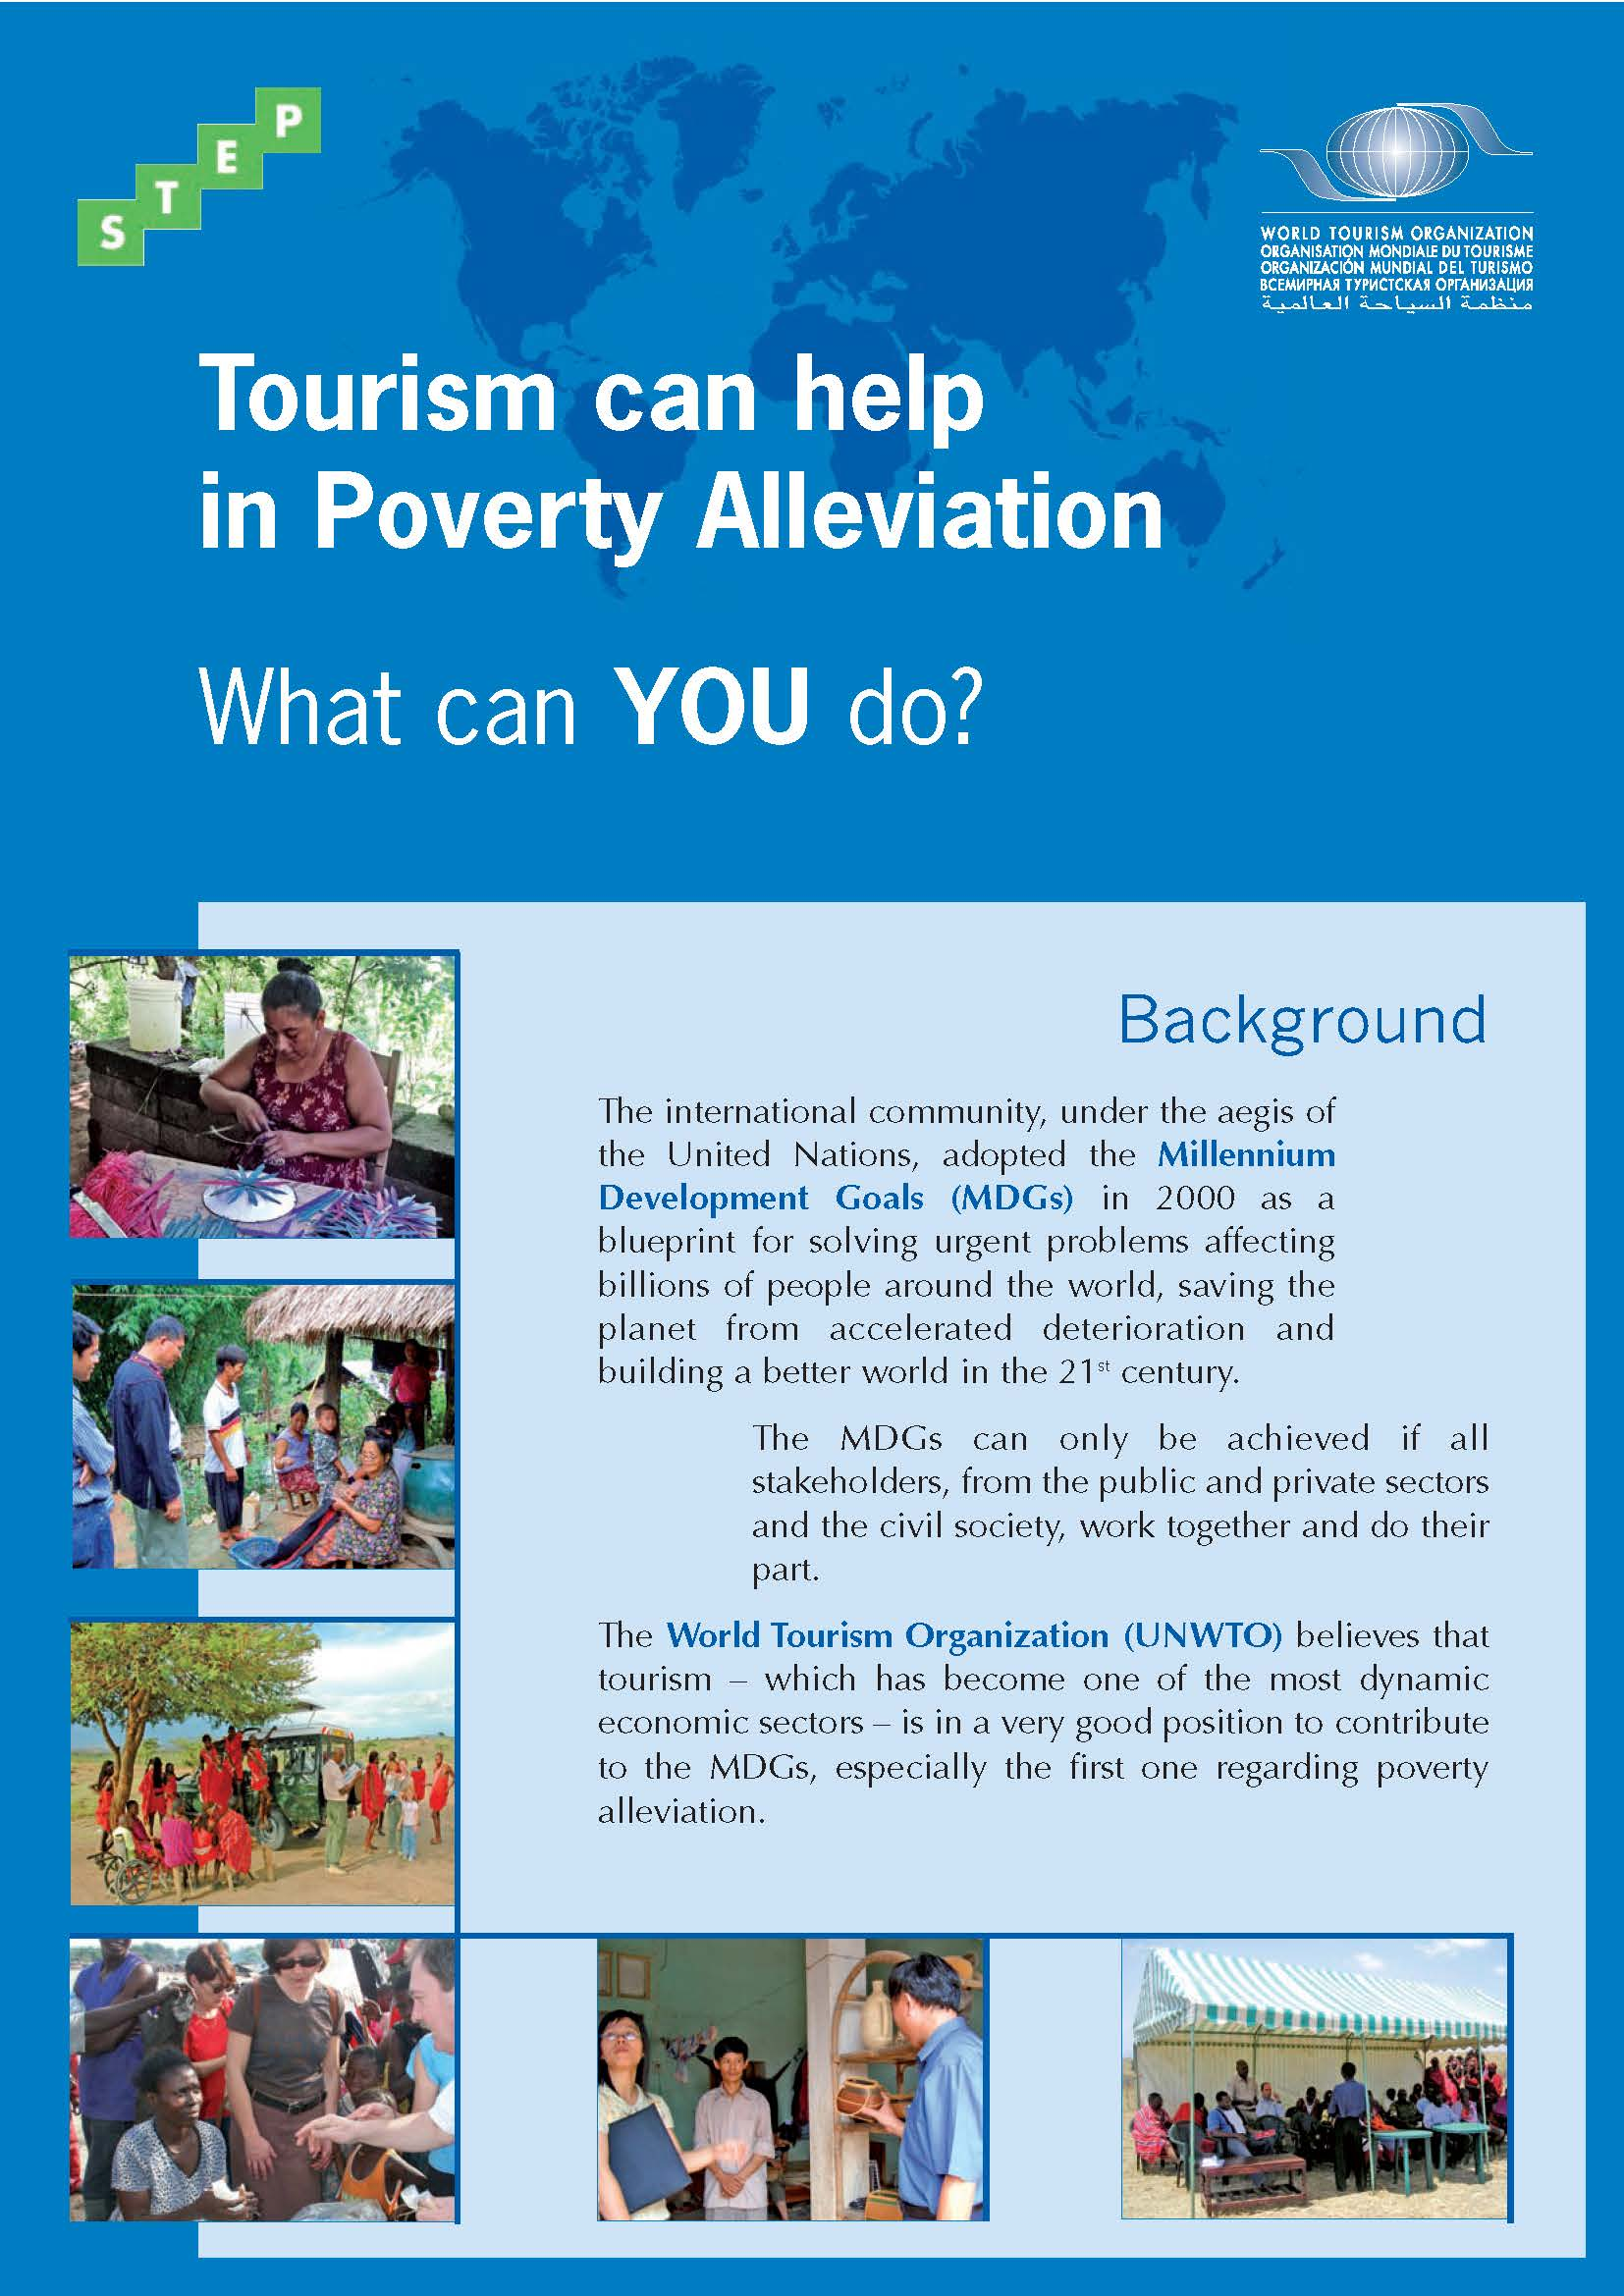 Tourism can help in poverty alleviation: what can you do?